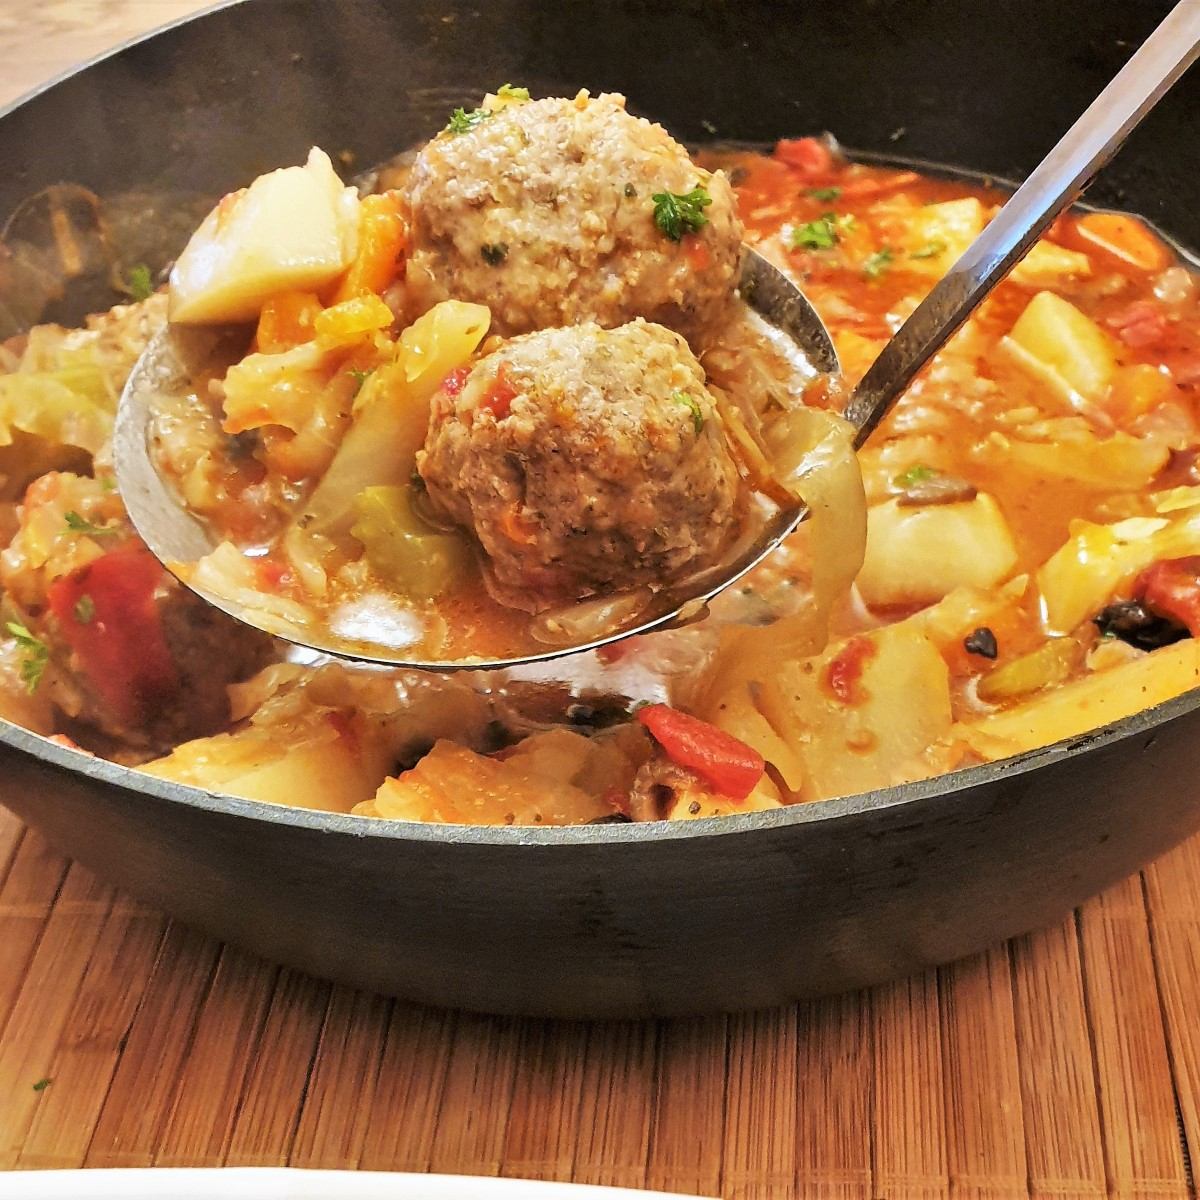 Meatballs being spooned from a pan of meatball and vegetable soup.